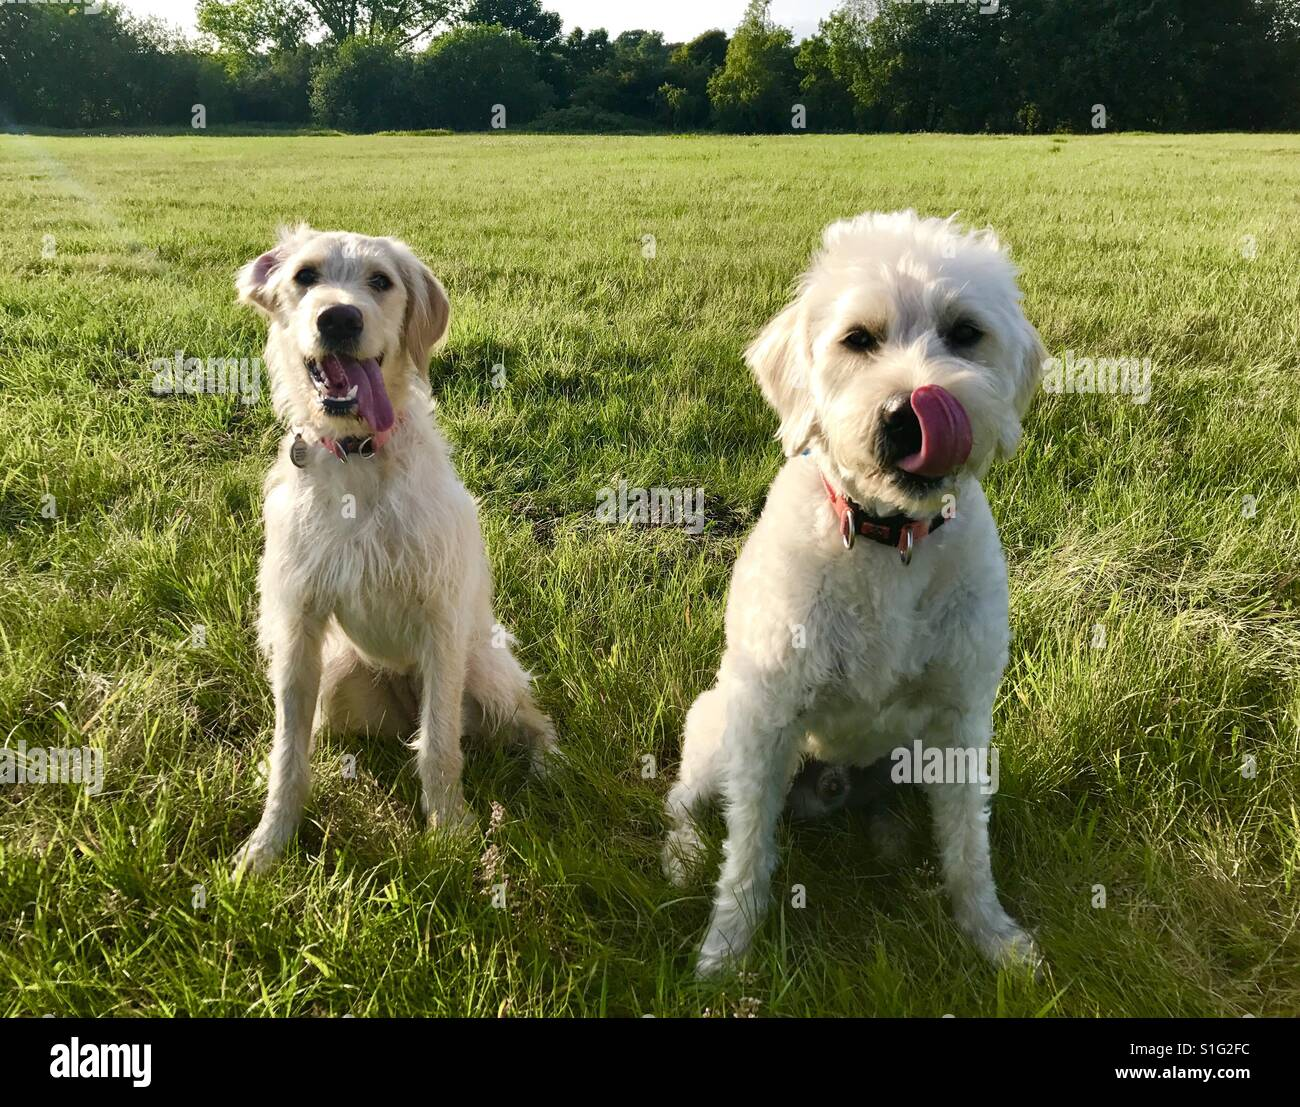 Sullivan and Breezy the adorable labradoodle brother and sister tongues out in the sun - Stock Image